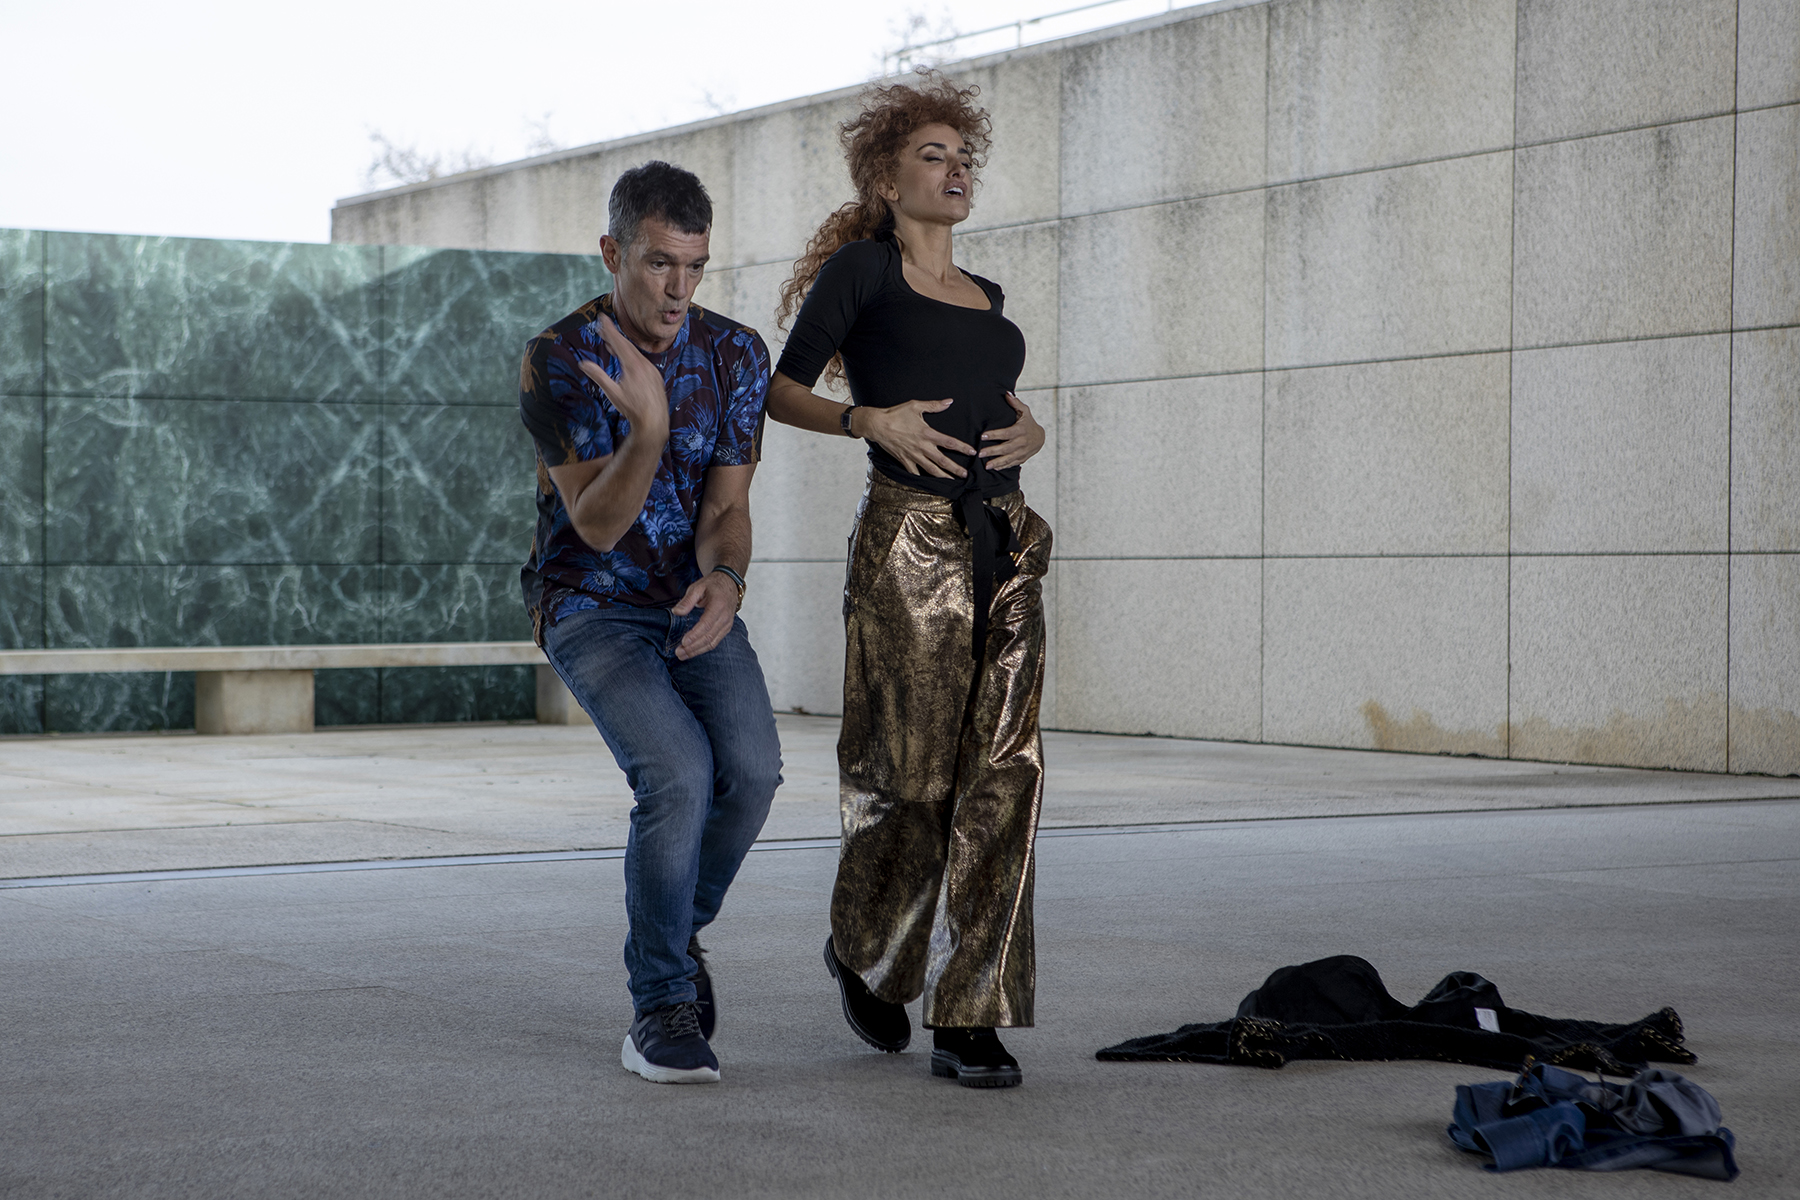 Penelope Cruz and Antonio Banderas dance together in a cement plaza with jackets on the ground